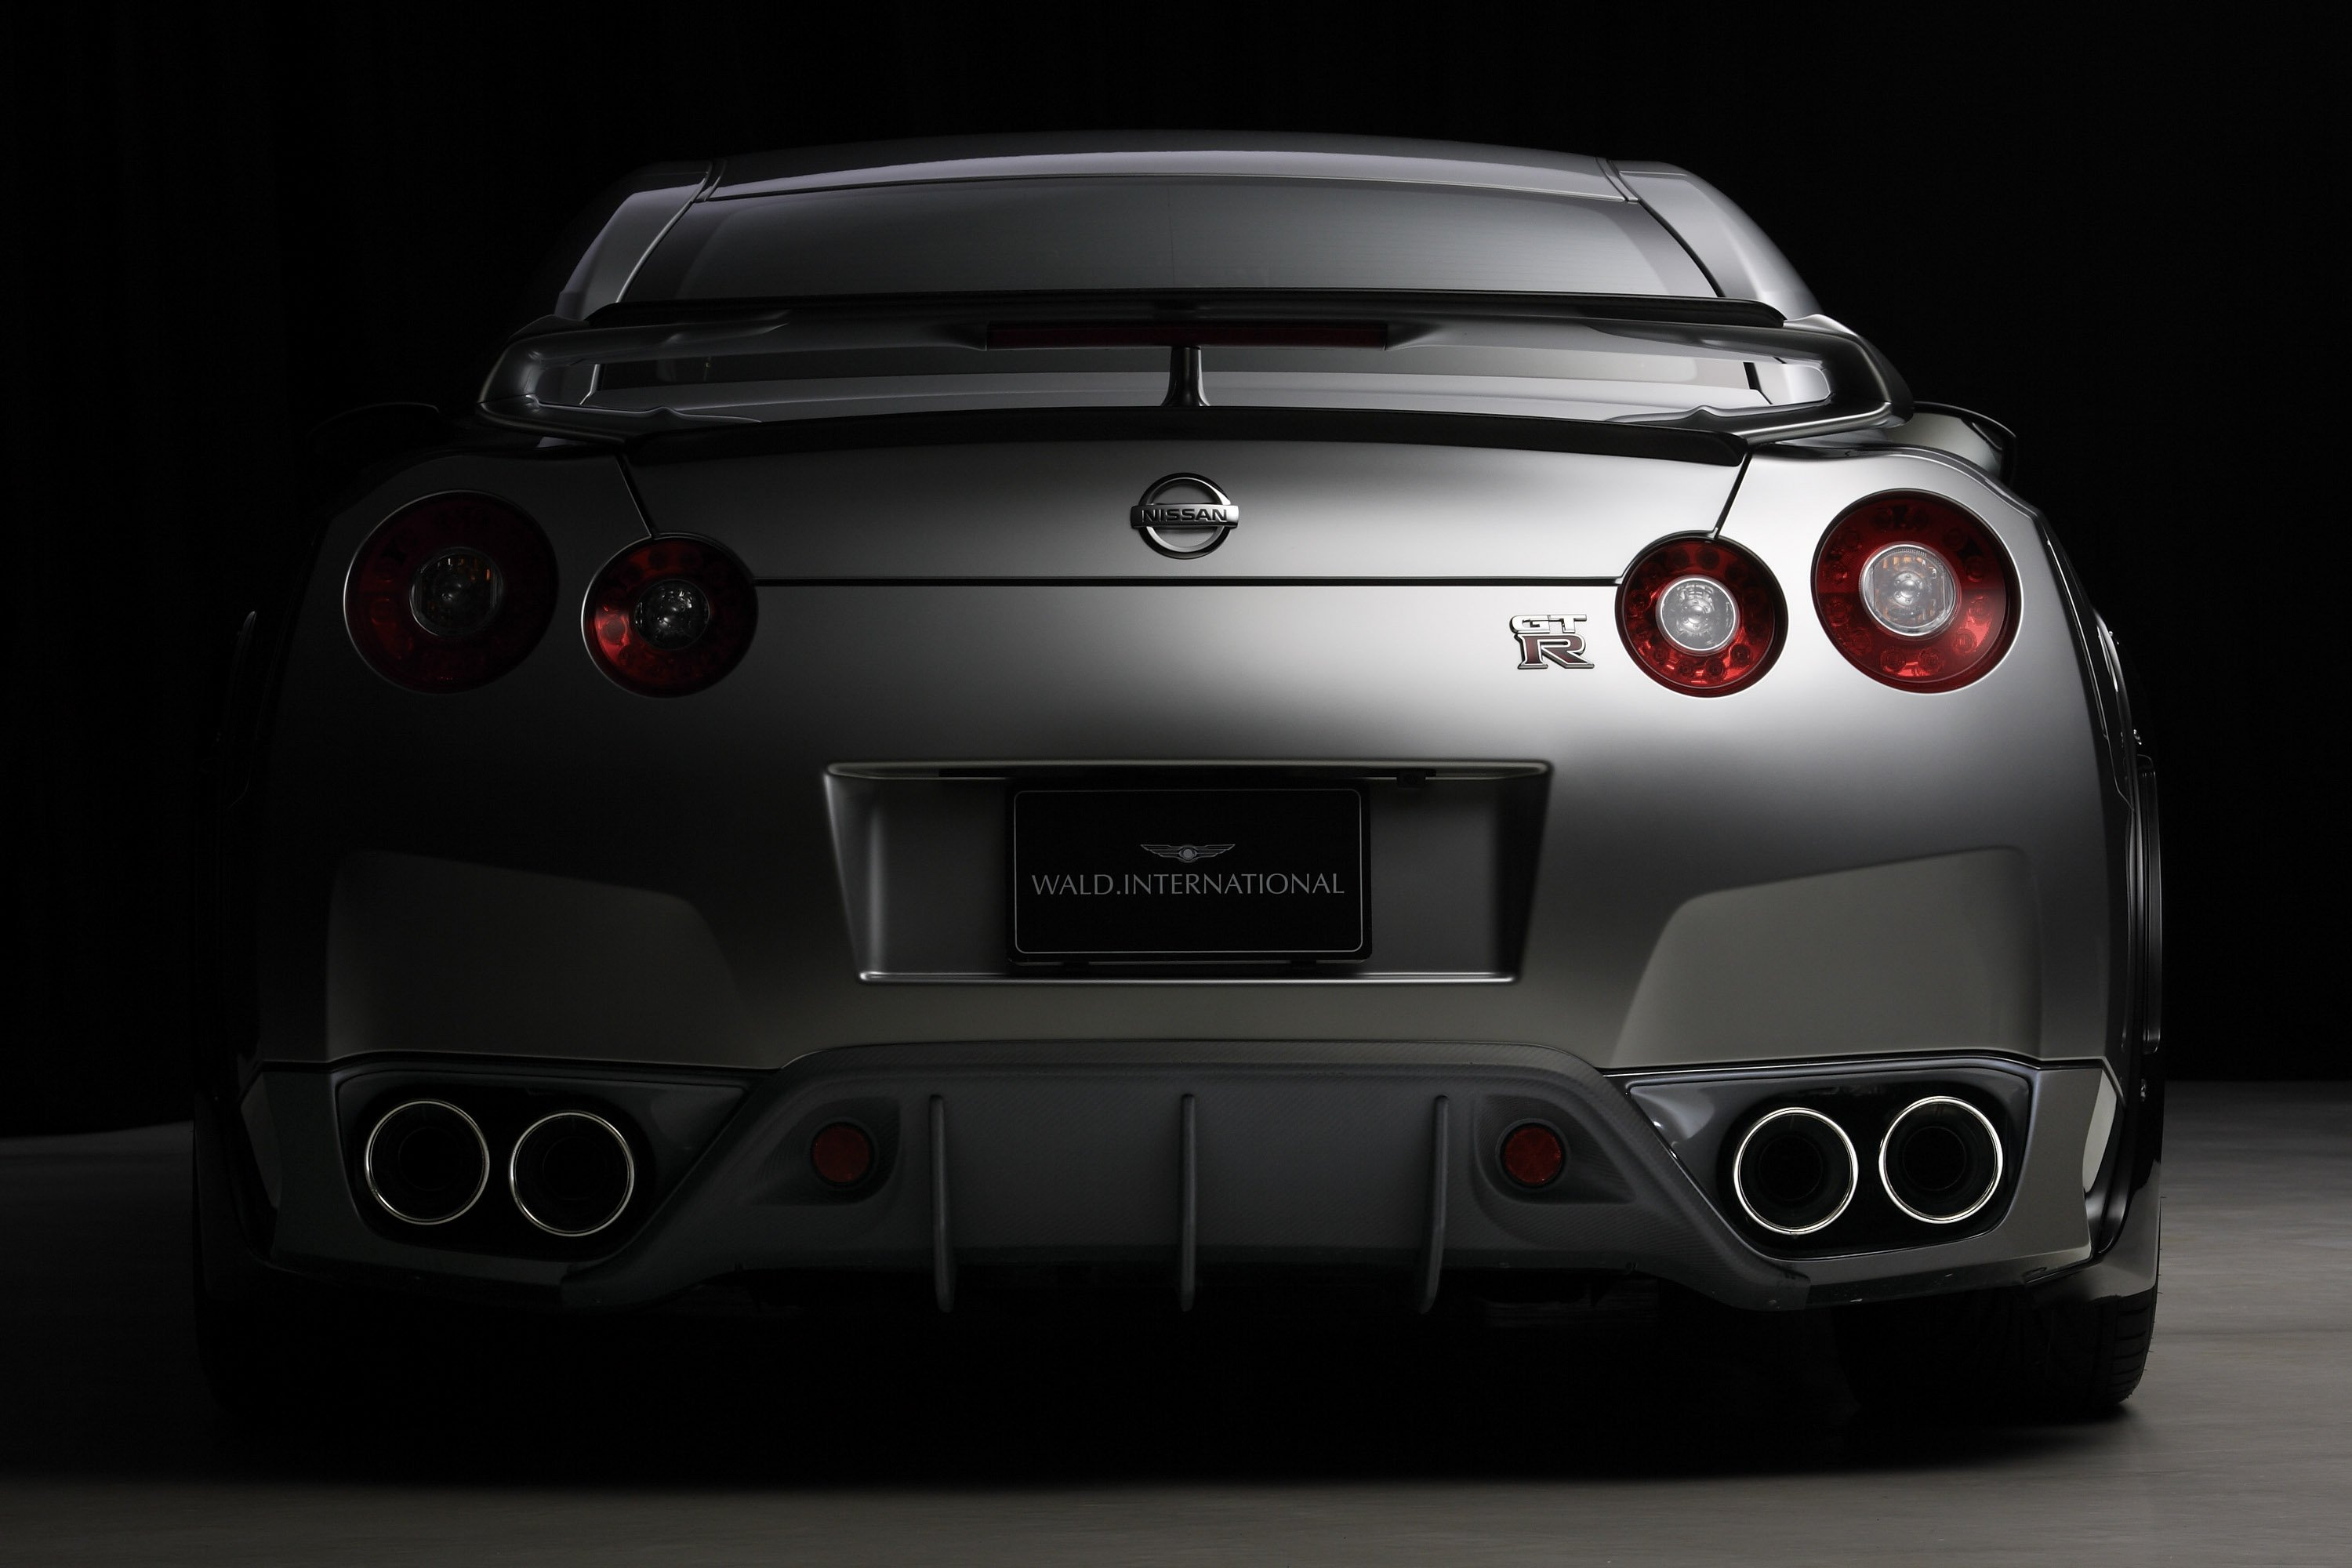 gt-r nismo nissan r35 tuning supercar coupe japan gris grey